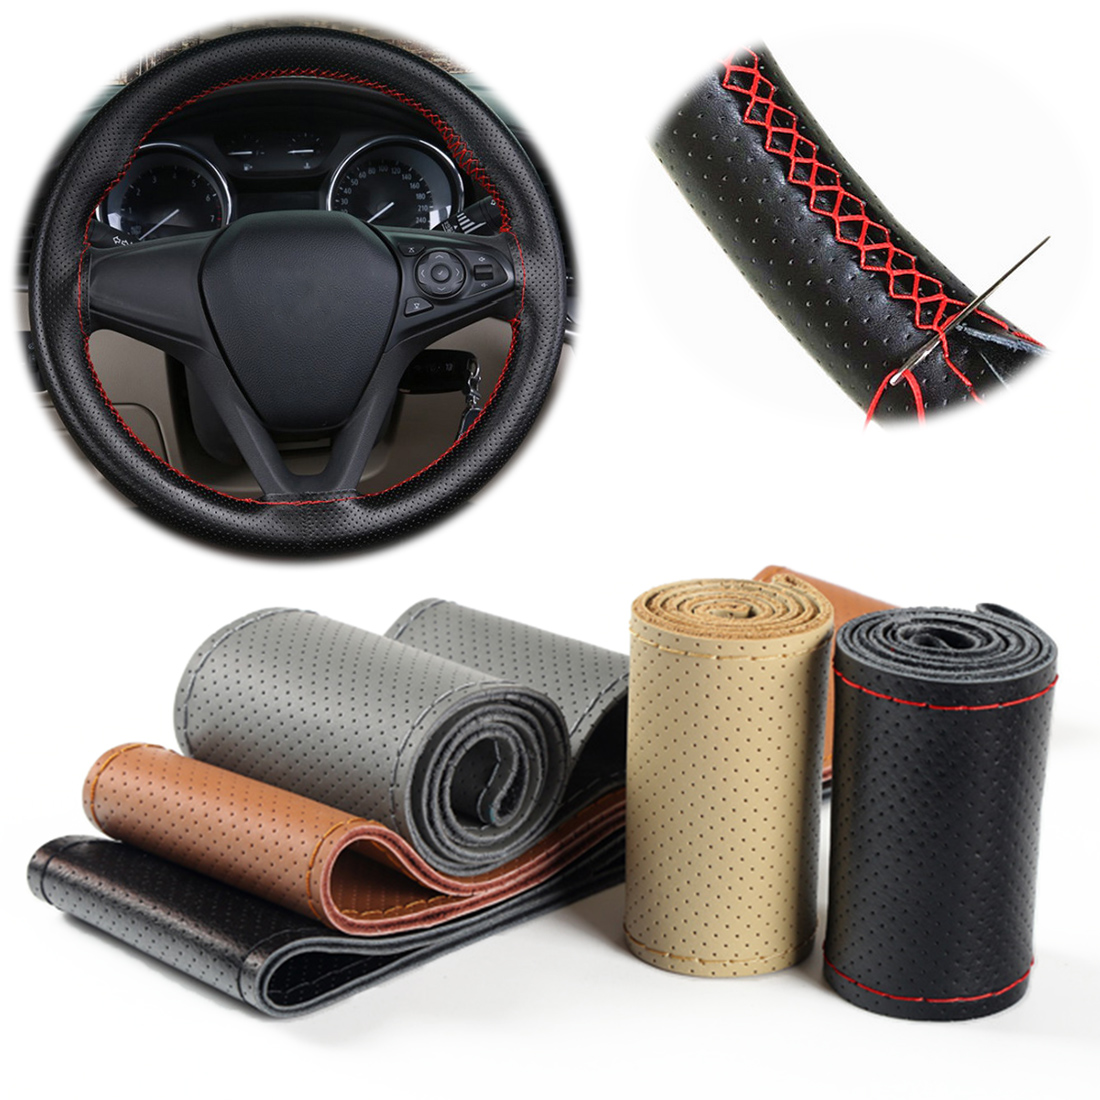 Dewtreetali 38cm Genuine Leather Auto Car Steering Wheel Cover Soft Anti-slip Braid With Needles Thread Interior Accessories